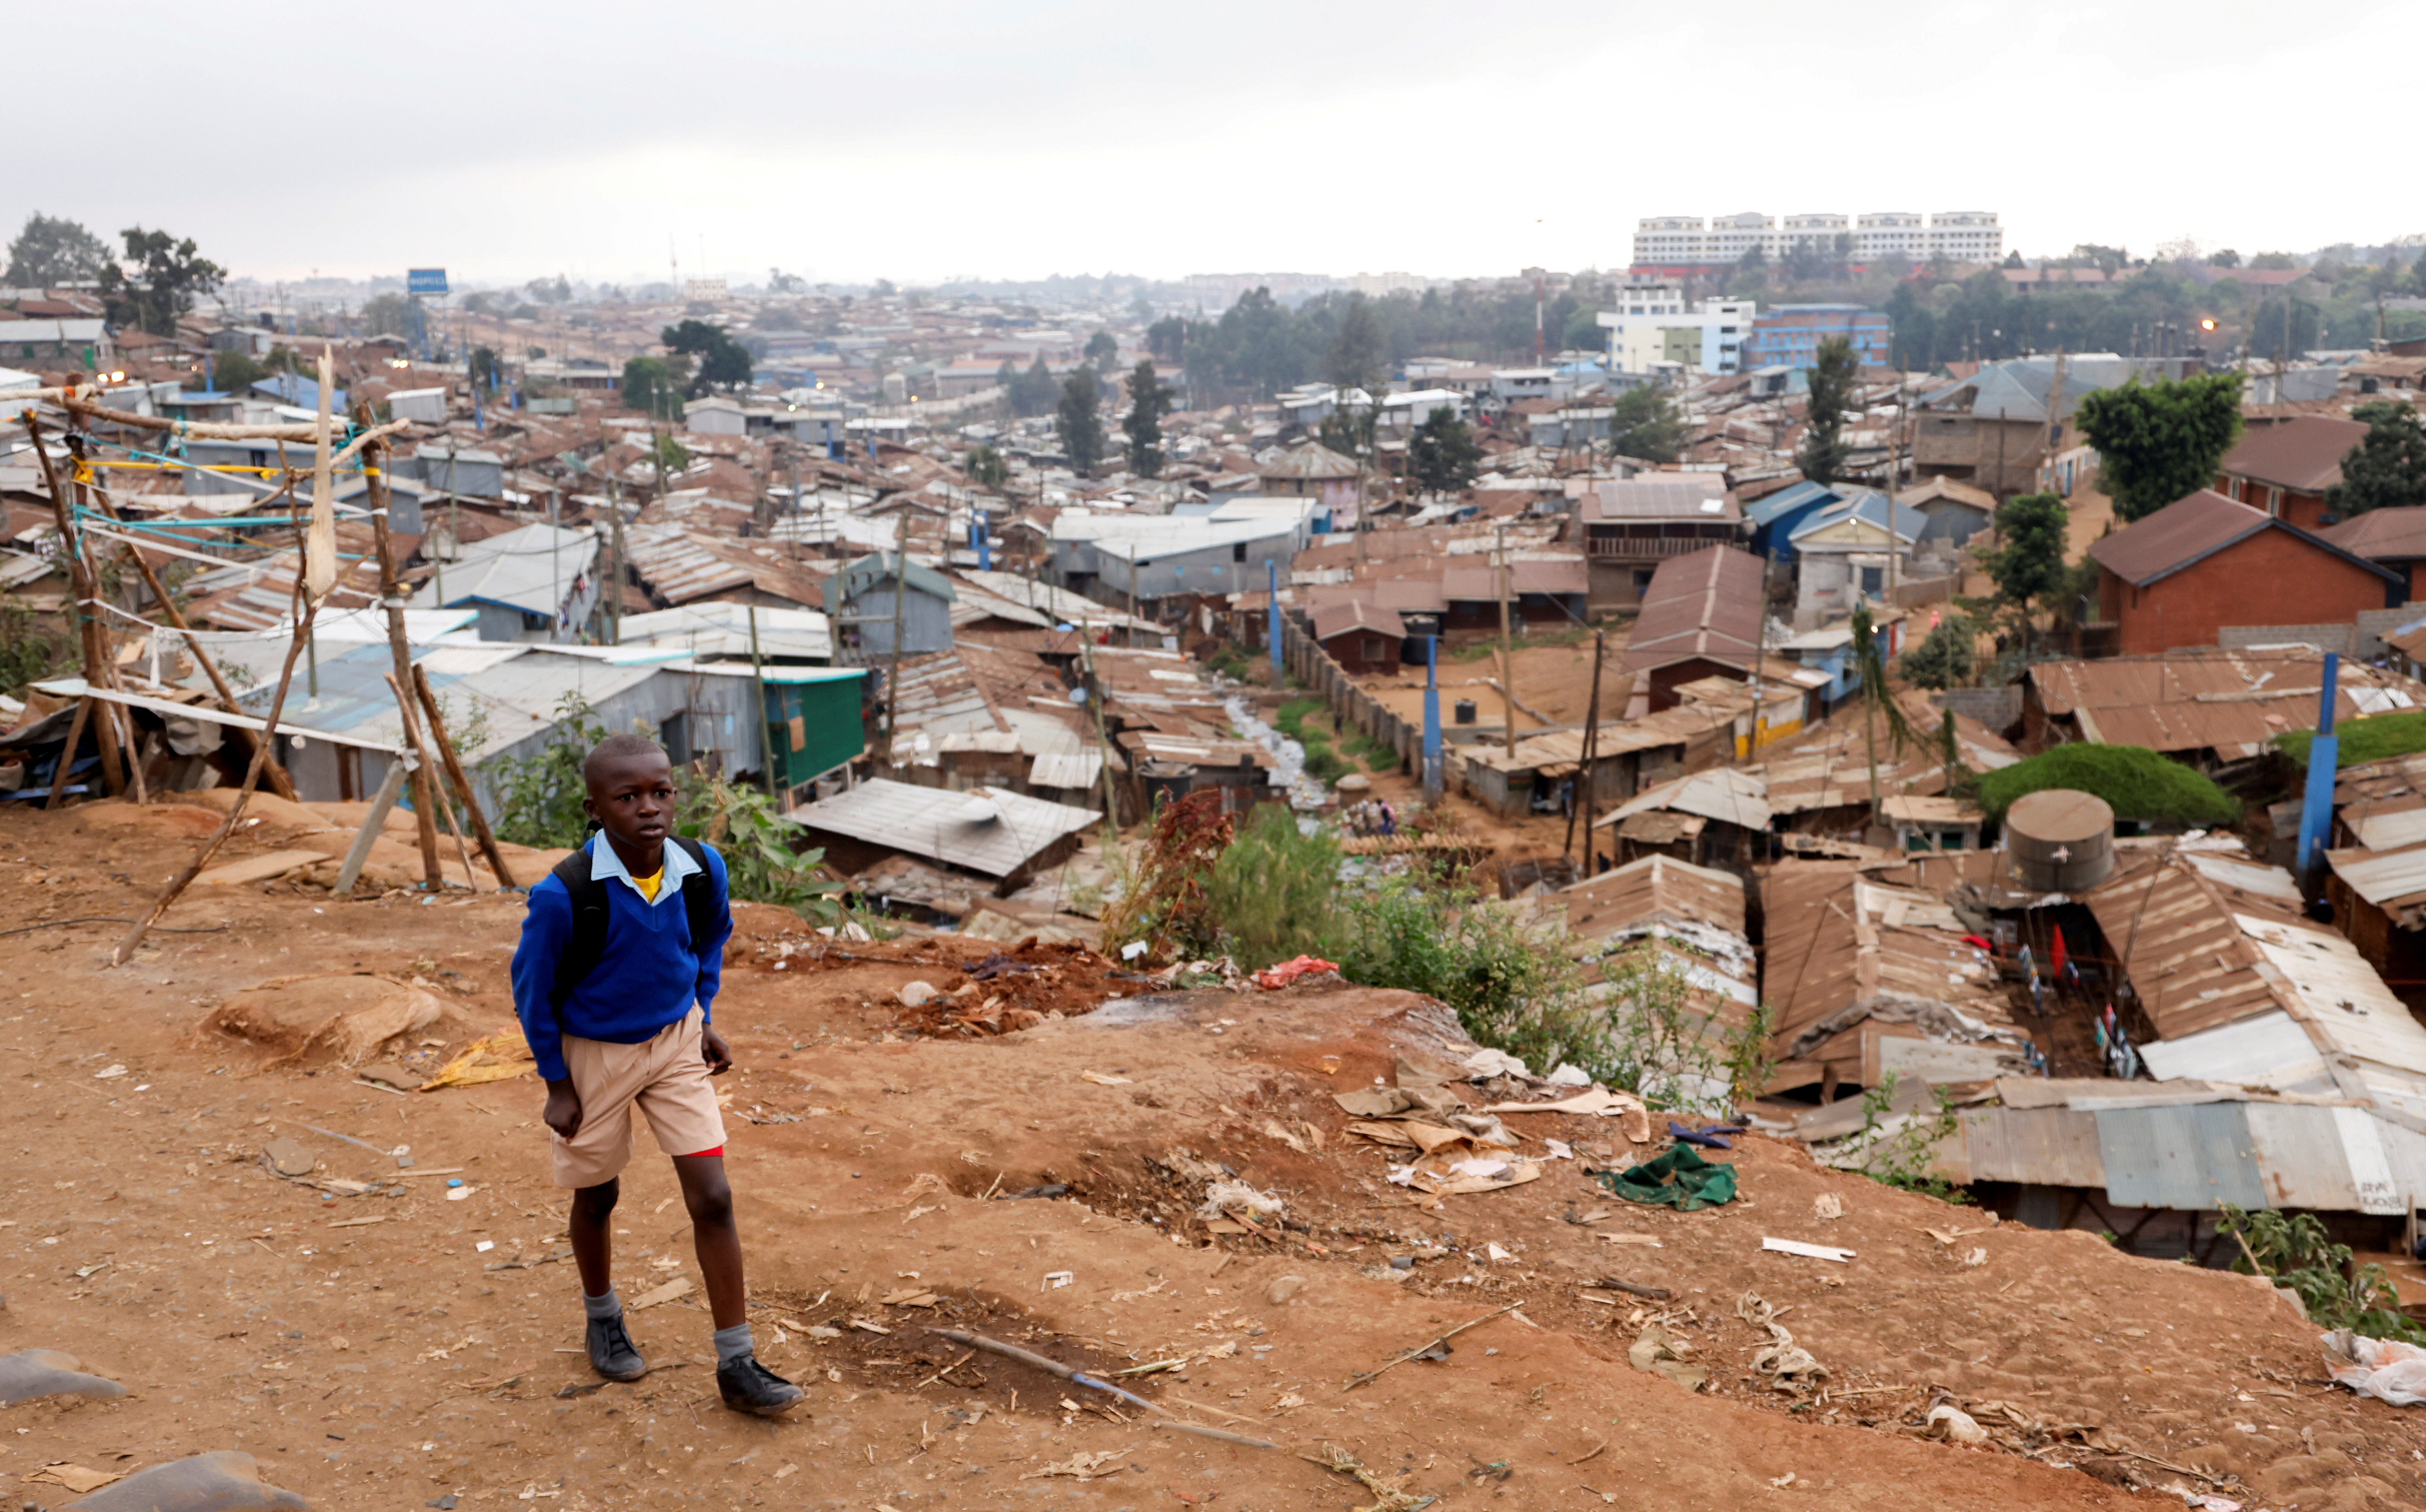 A schoolboy walks to school during the partial reopening of schools, after the government scrapped plans to cancel the academic year due to the coronavirus disease (COVID-19) pandemic, in Kibera slums of Nairobi, Kenya October 12, 2020.